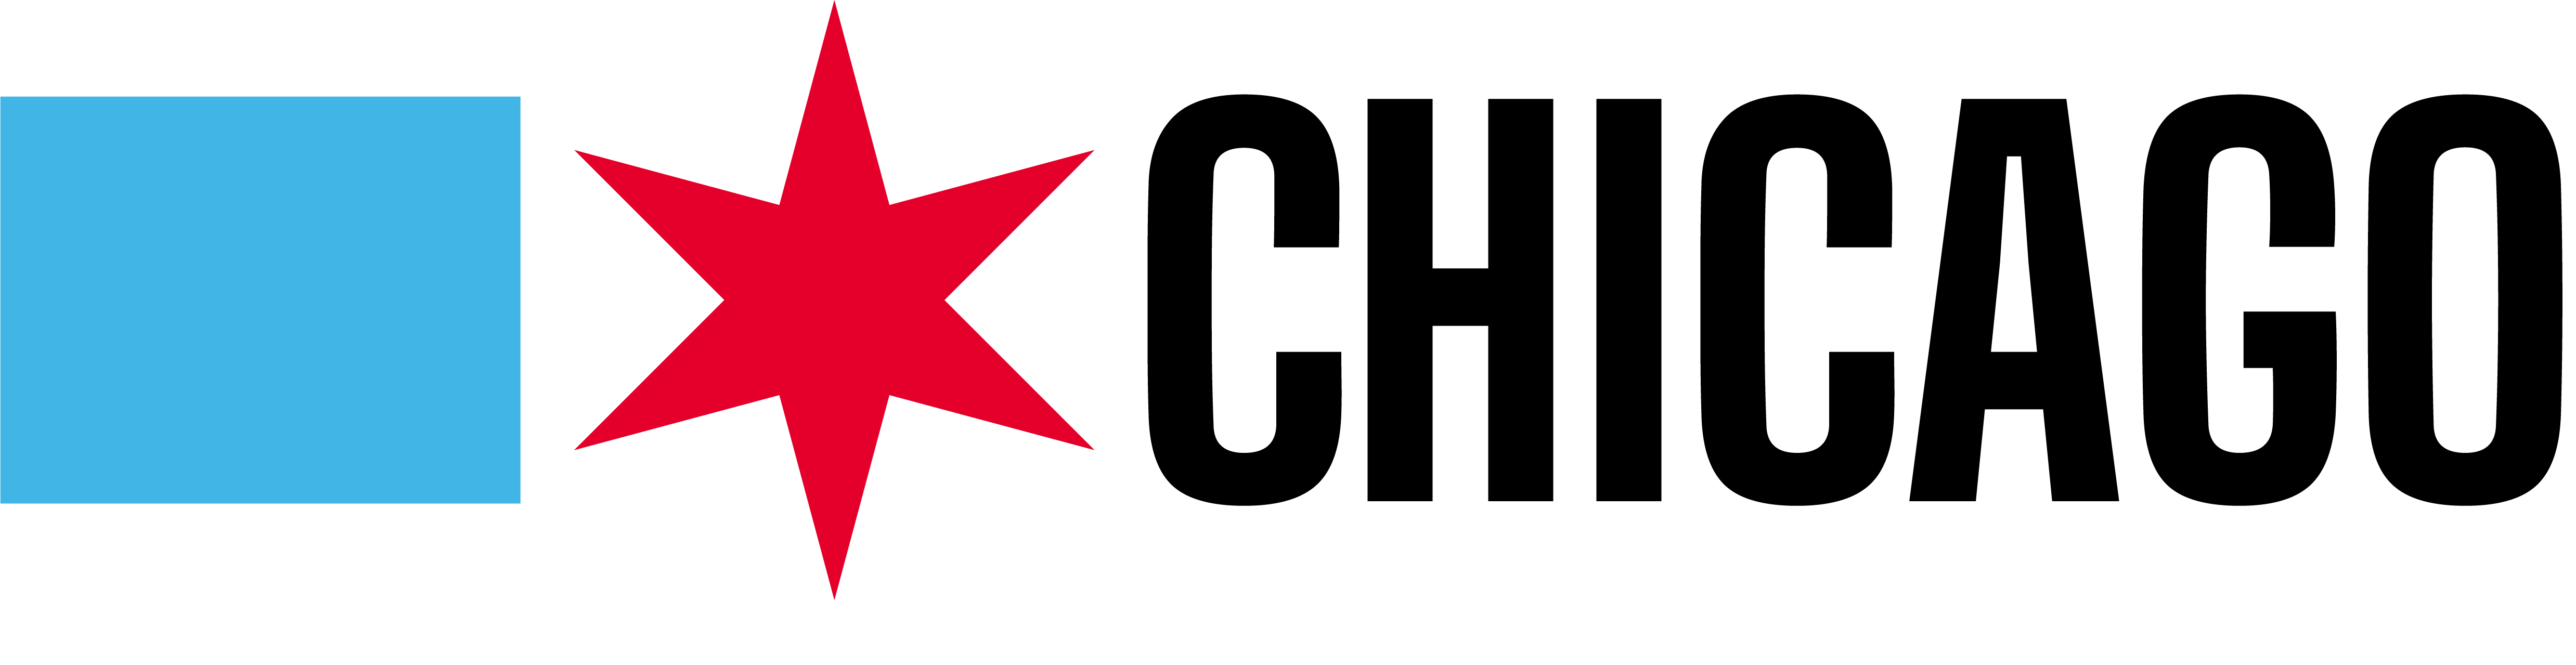 Chicago gave itself a new logo for its 183rd birthday today